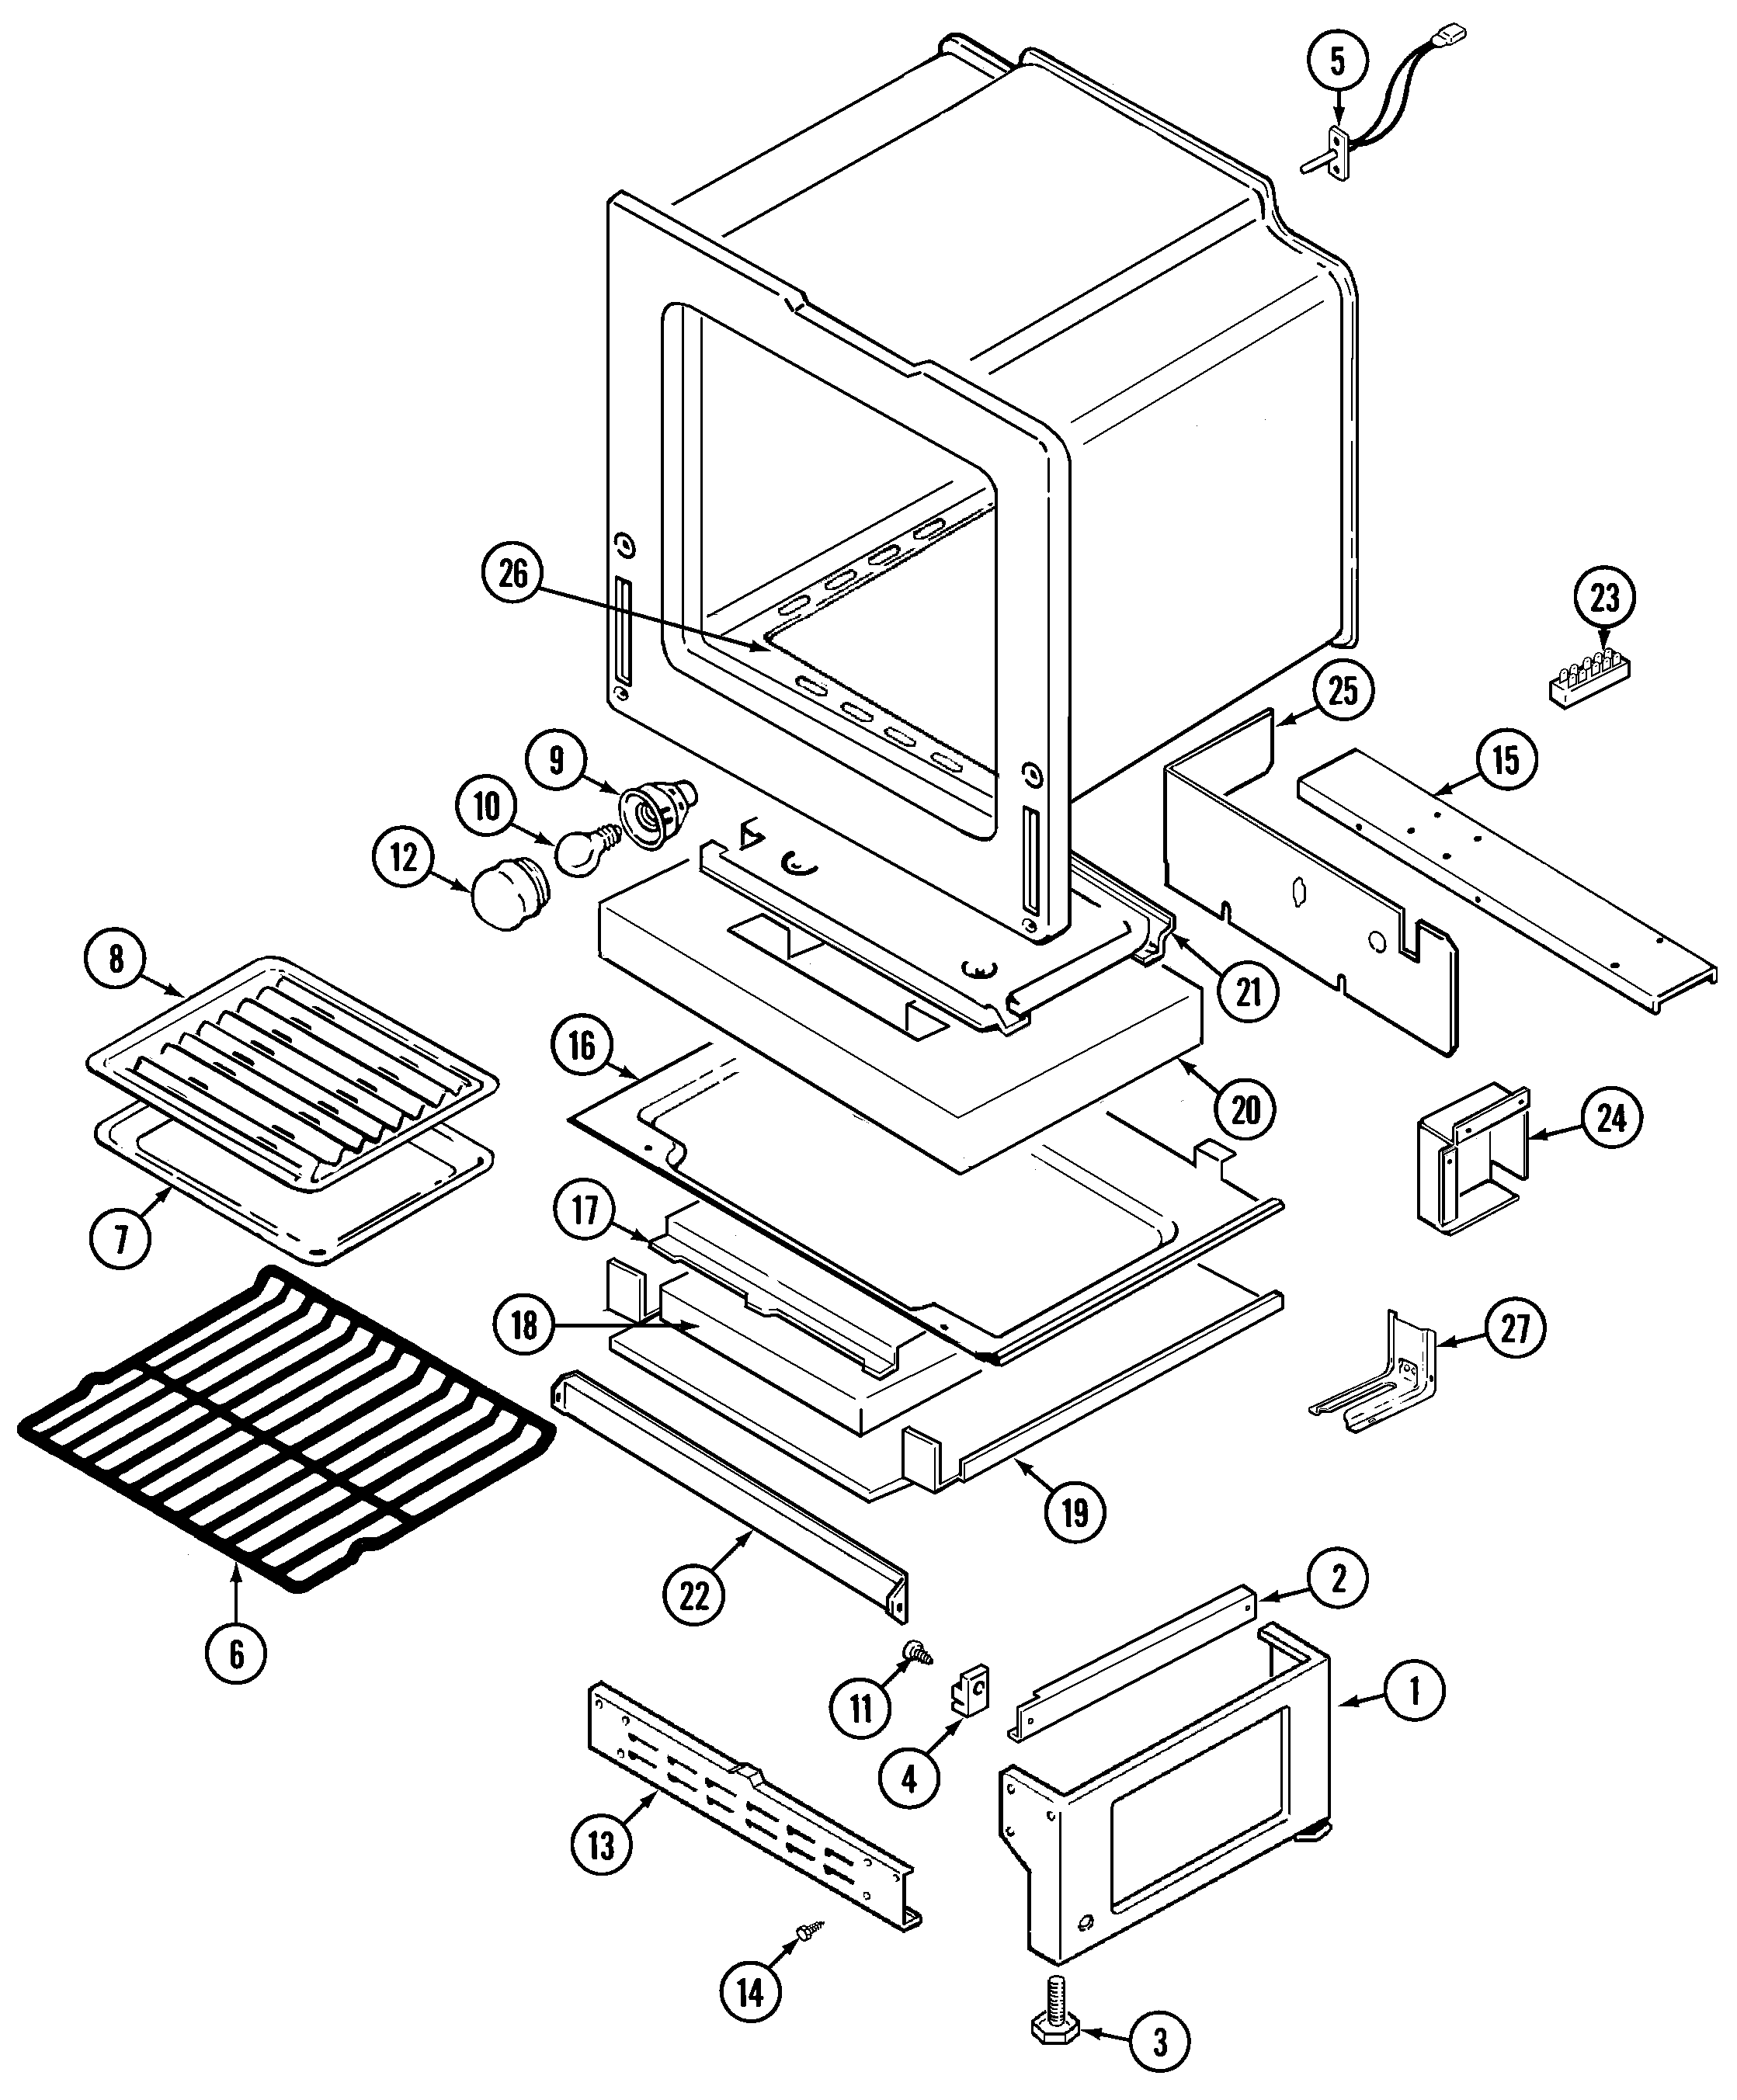 crg9700cae range oven/base parts diagram